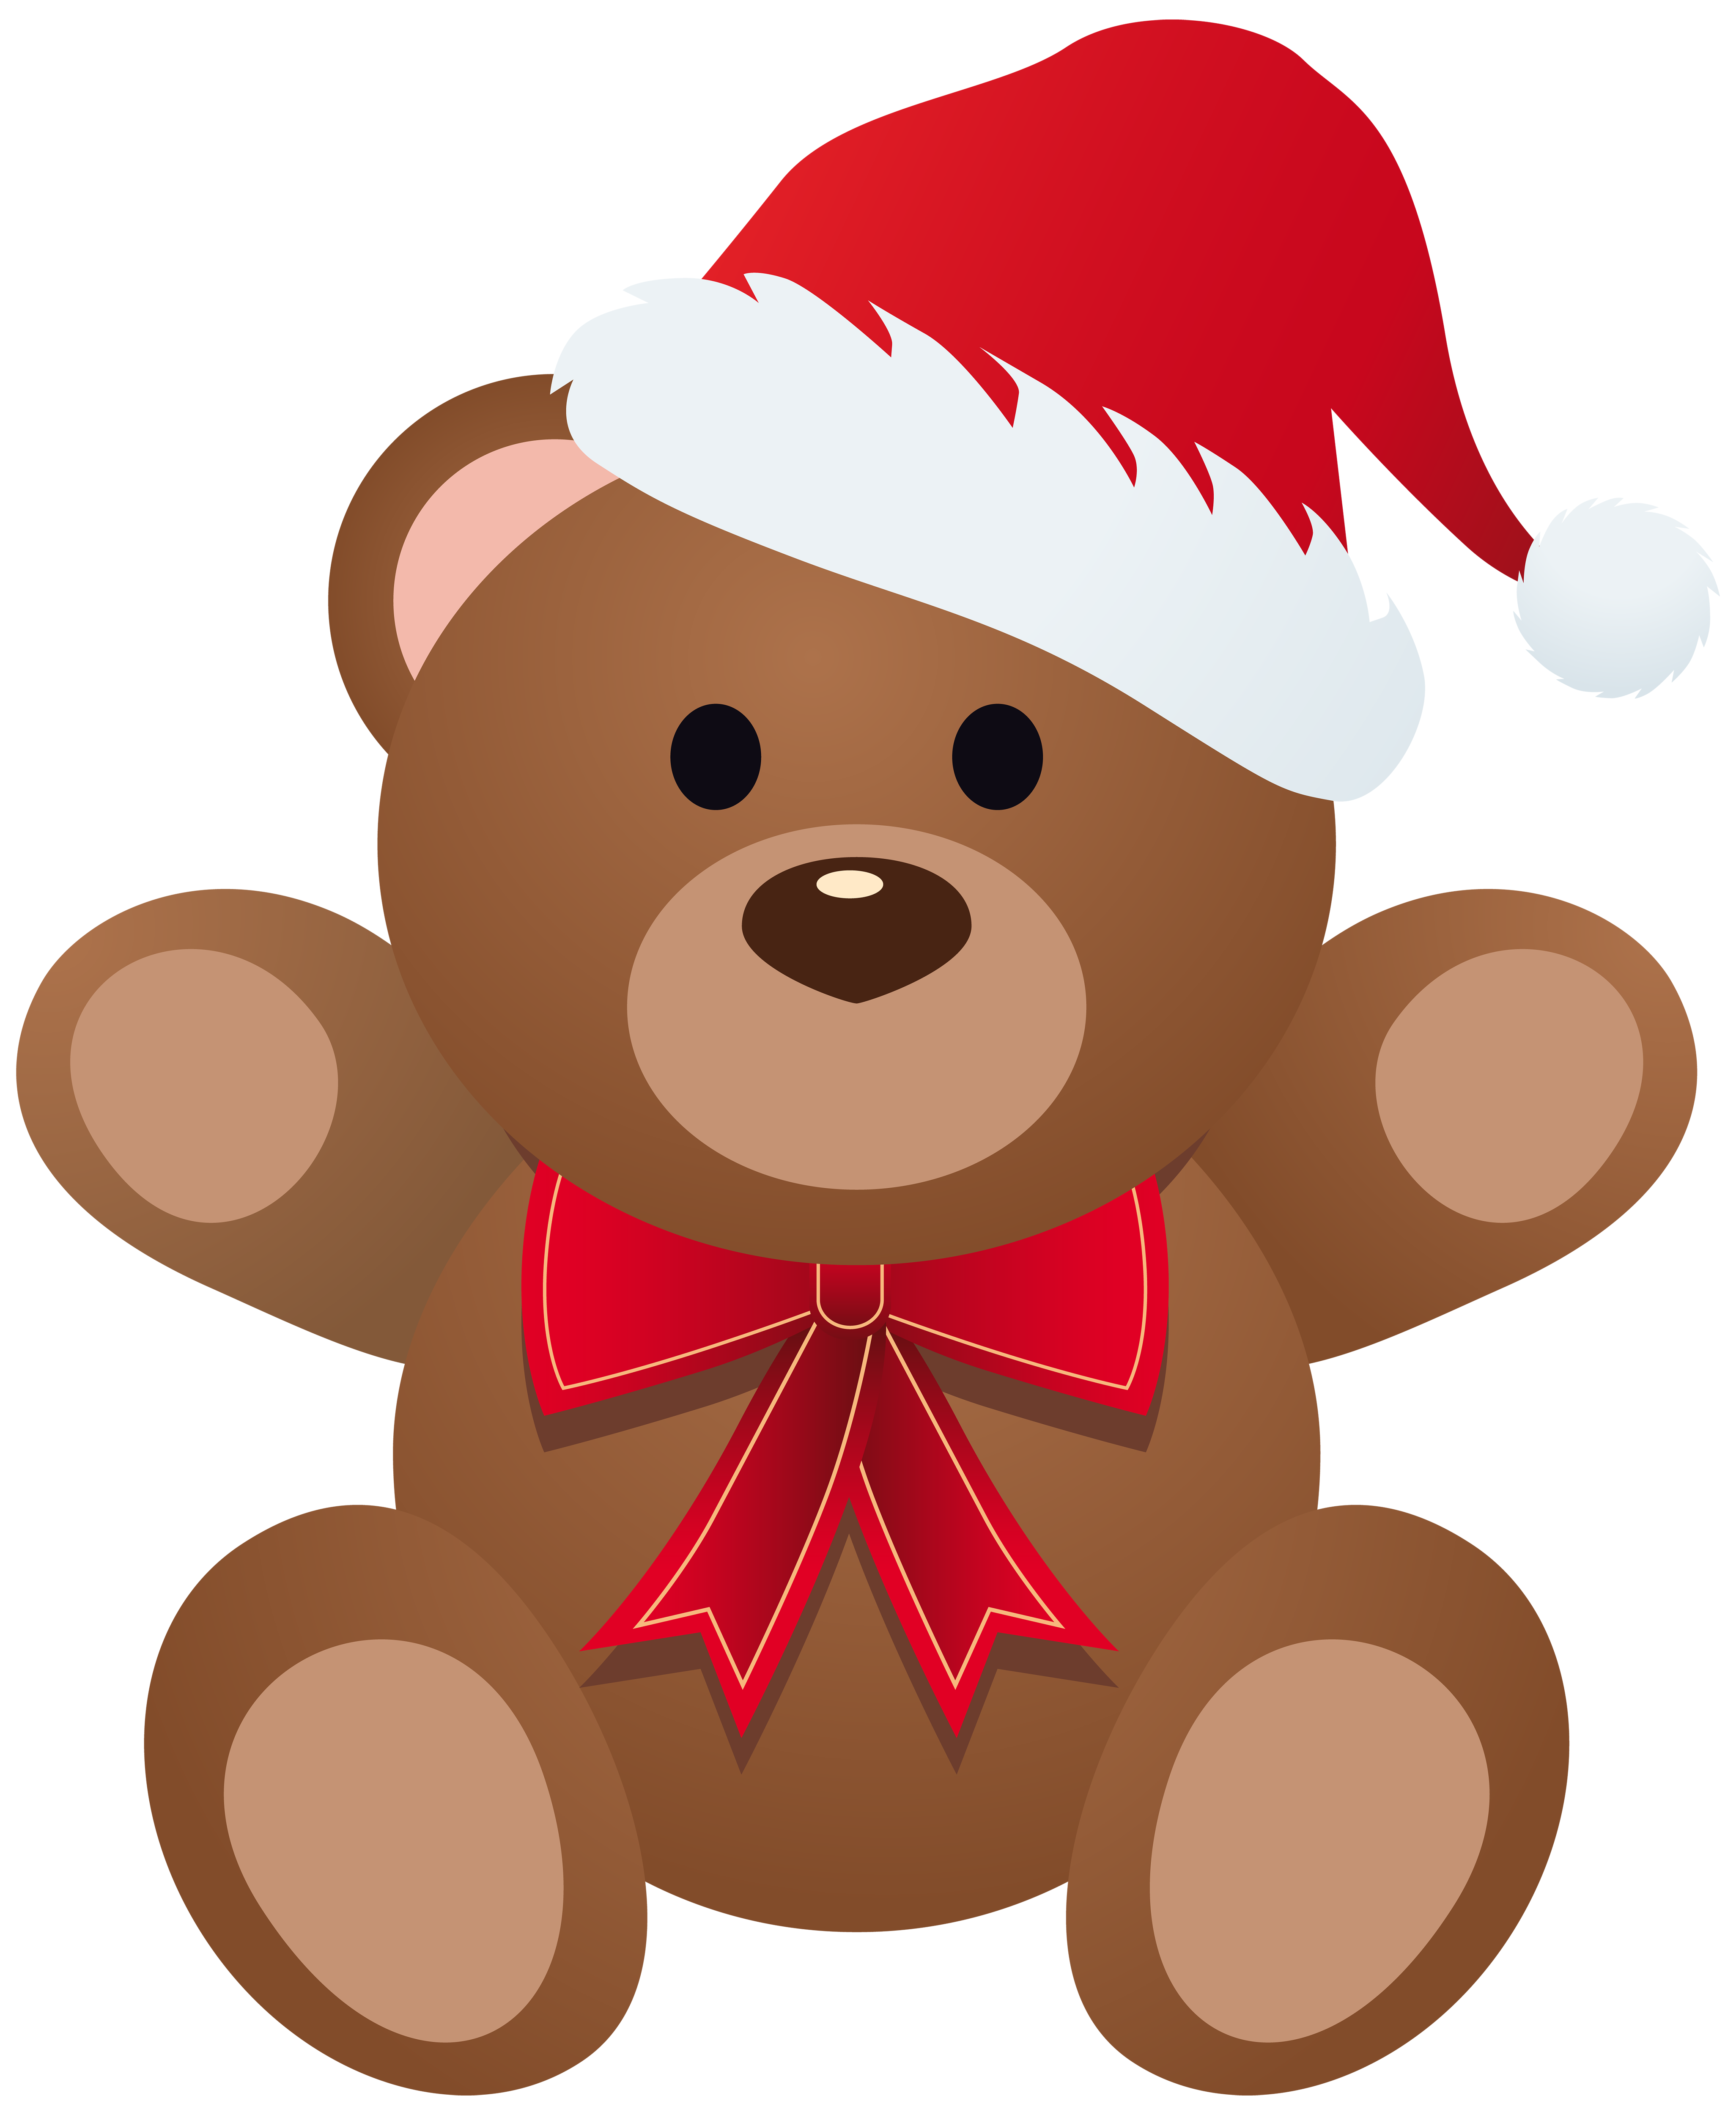 svg royalty free library Teddy png image gallery. Christmas bear clipart